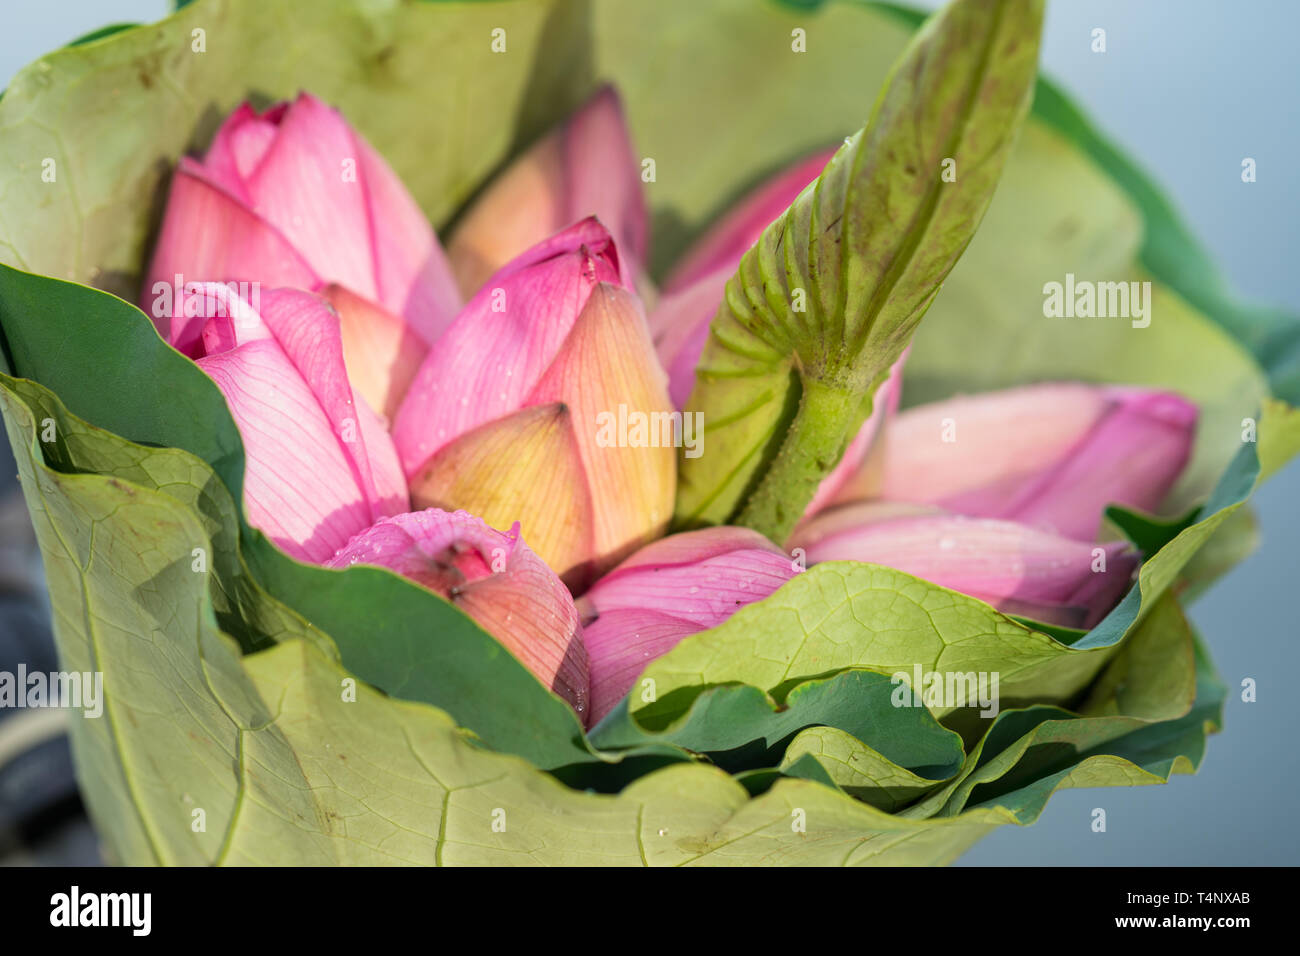 Pink Lotus Flowers Bouquet Made Of Lotus Leaves Stock Photo